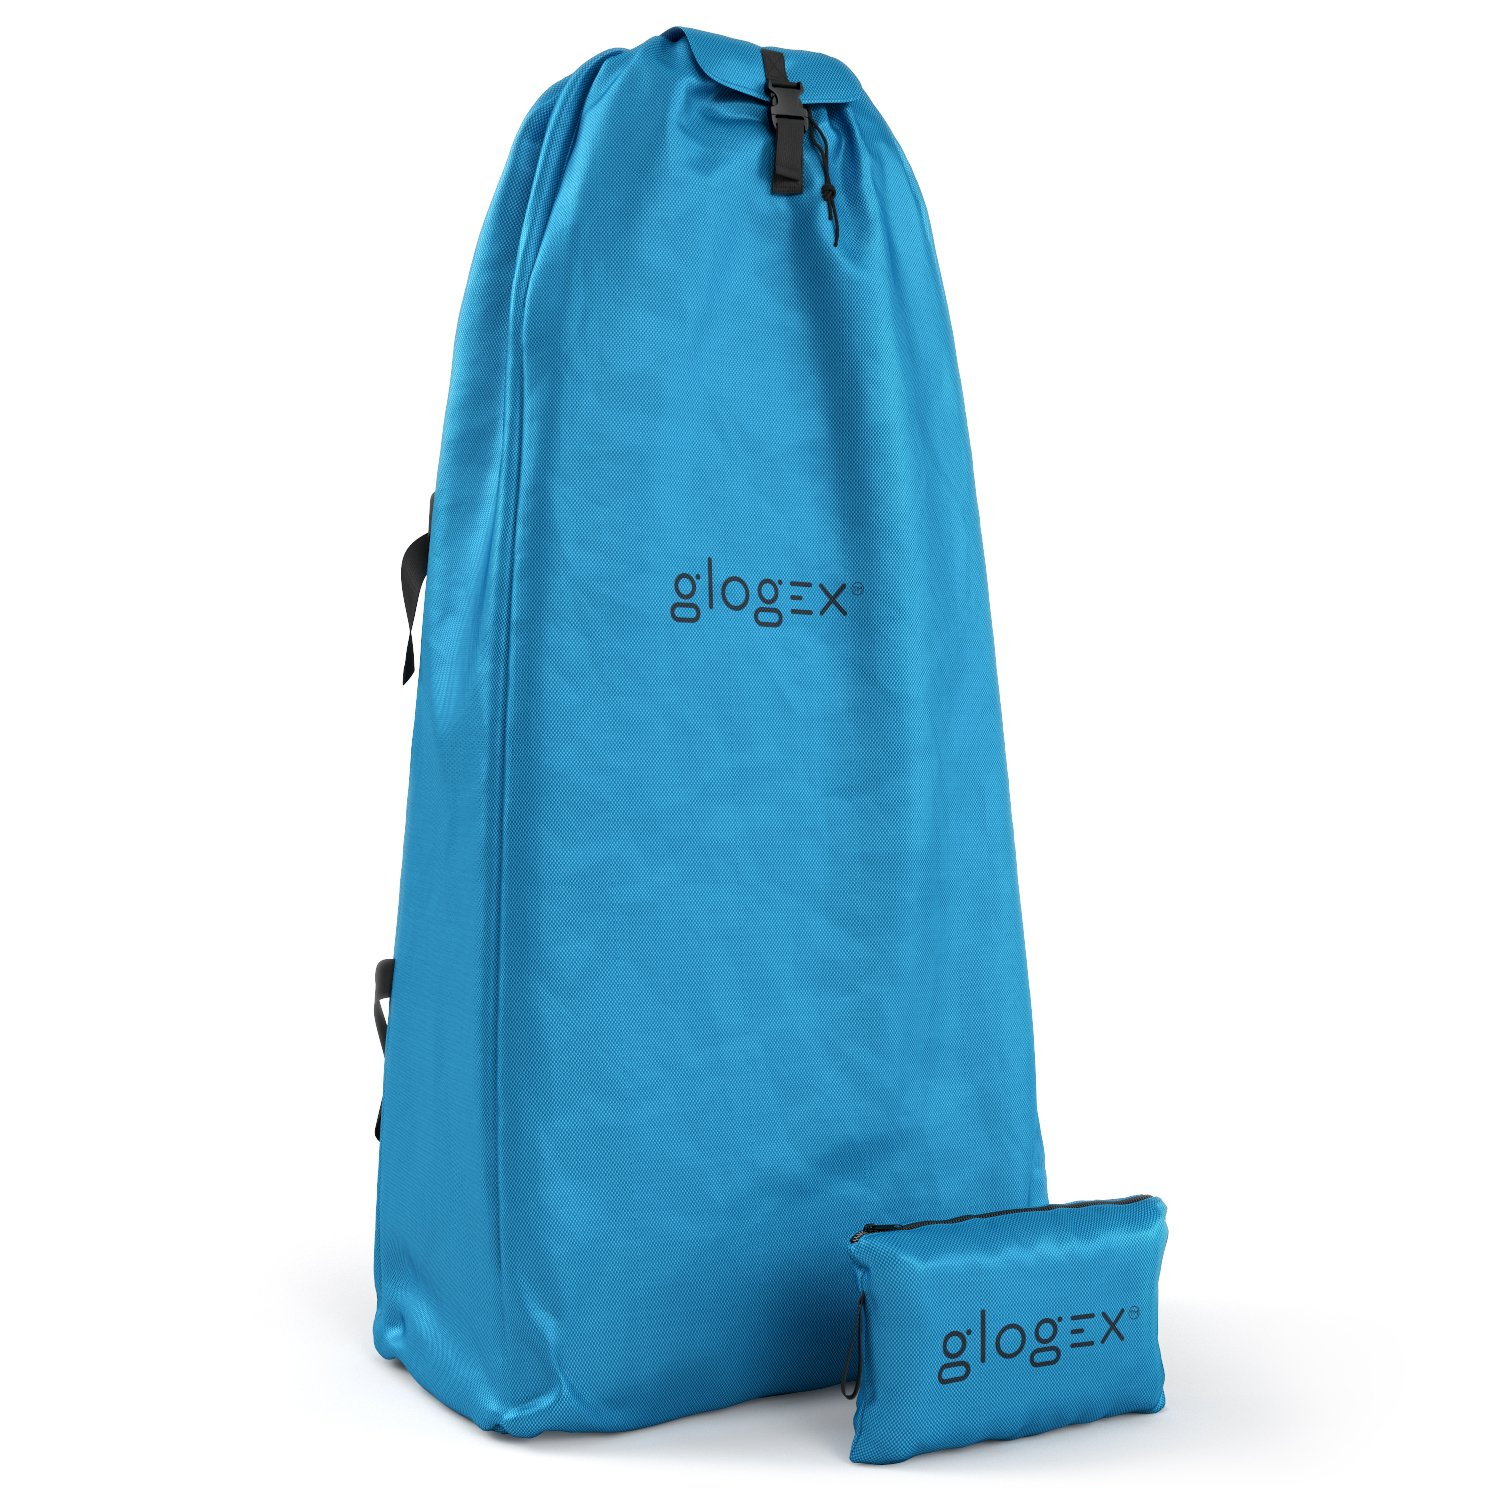 Glogex The Stroller Bag for Airplane - Convenient Gate Check Bag for Stroller - Lightweight, Waterproof, Carry Strap, Easy to Transport